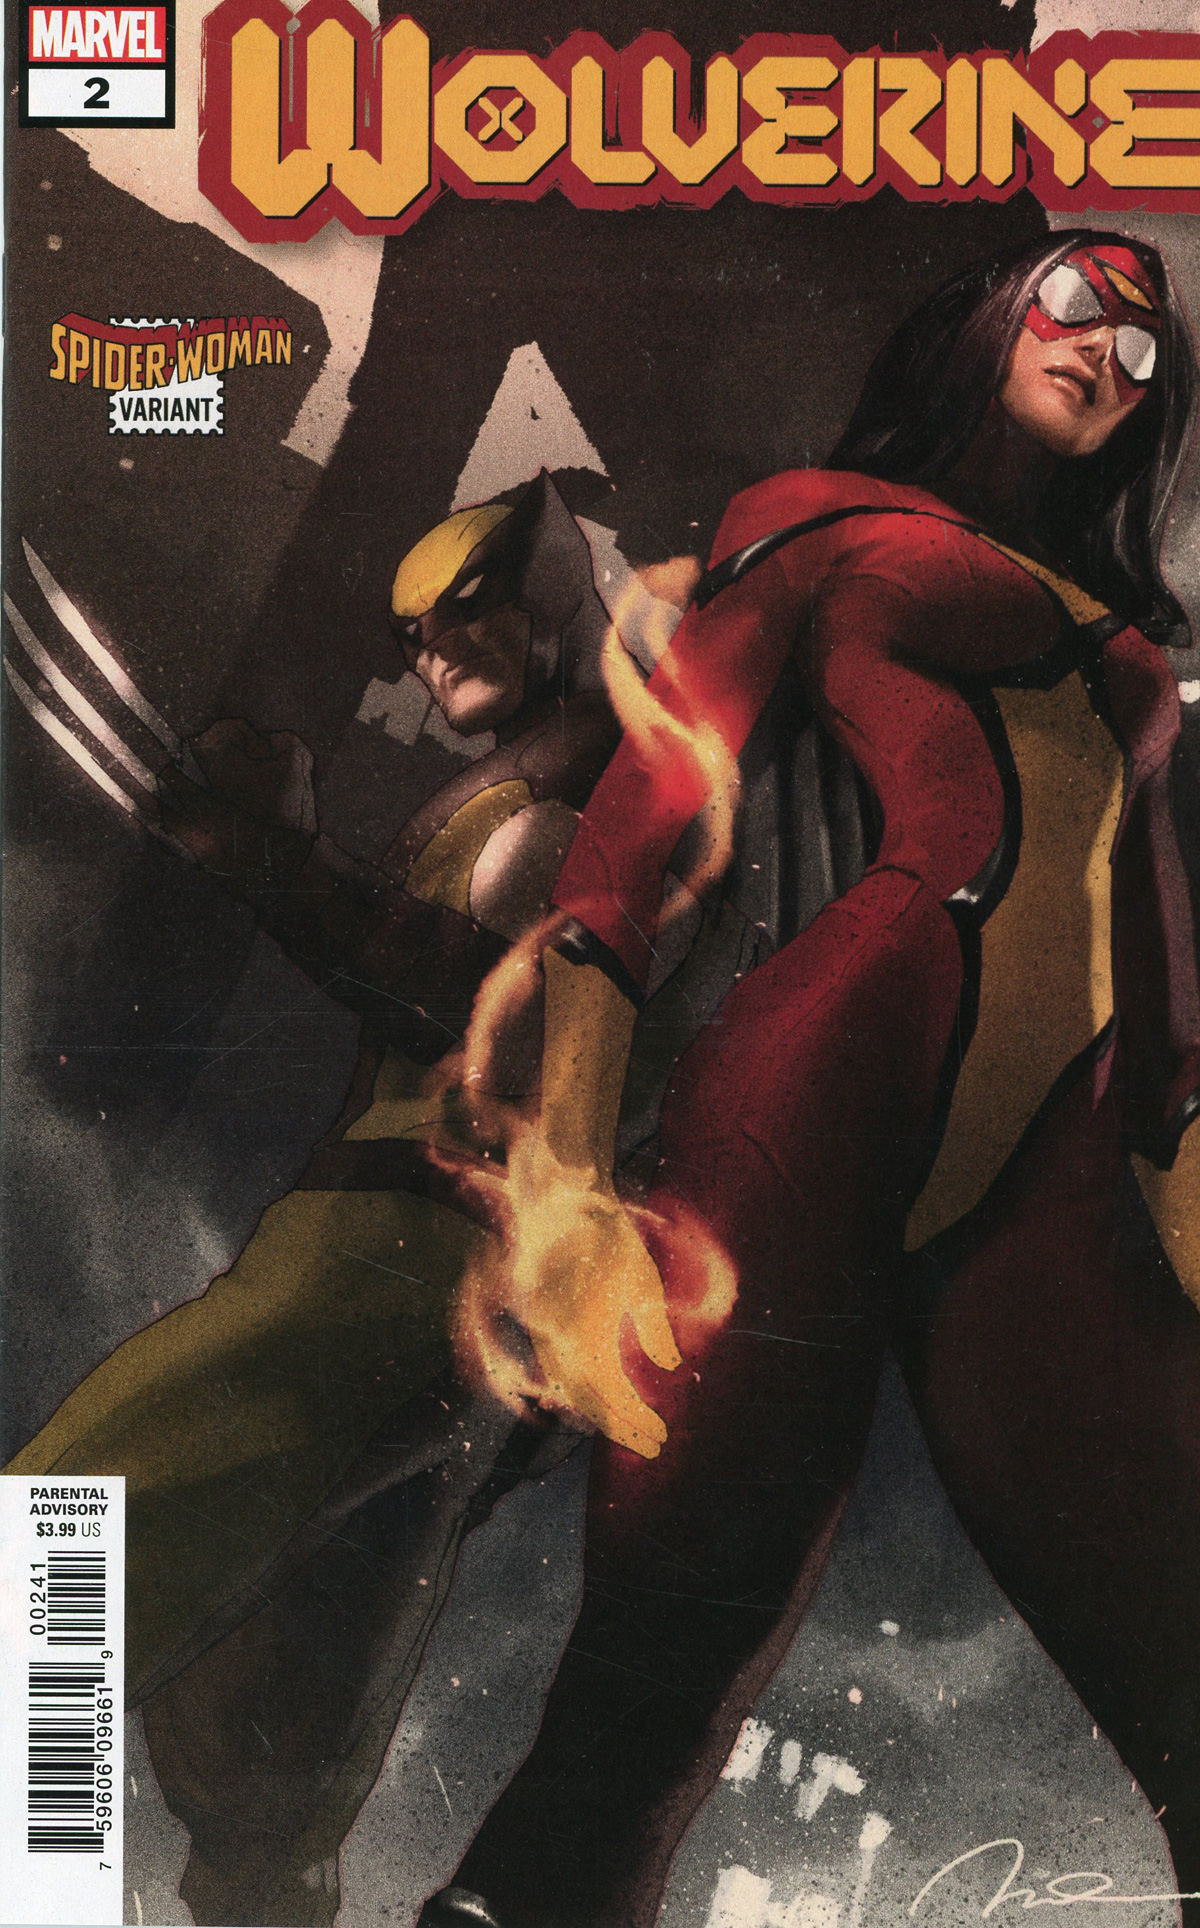 Wolverine Vol 7 #2 Cover B Variant Gerald Parel Spider-Woman Cover (Dawn Of X Tie-In)